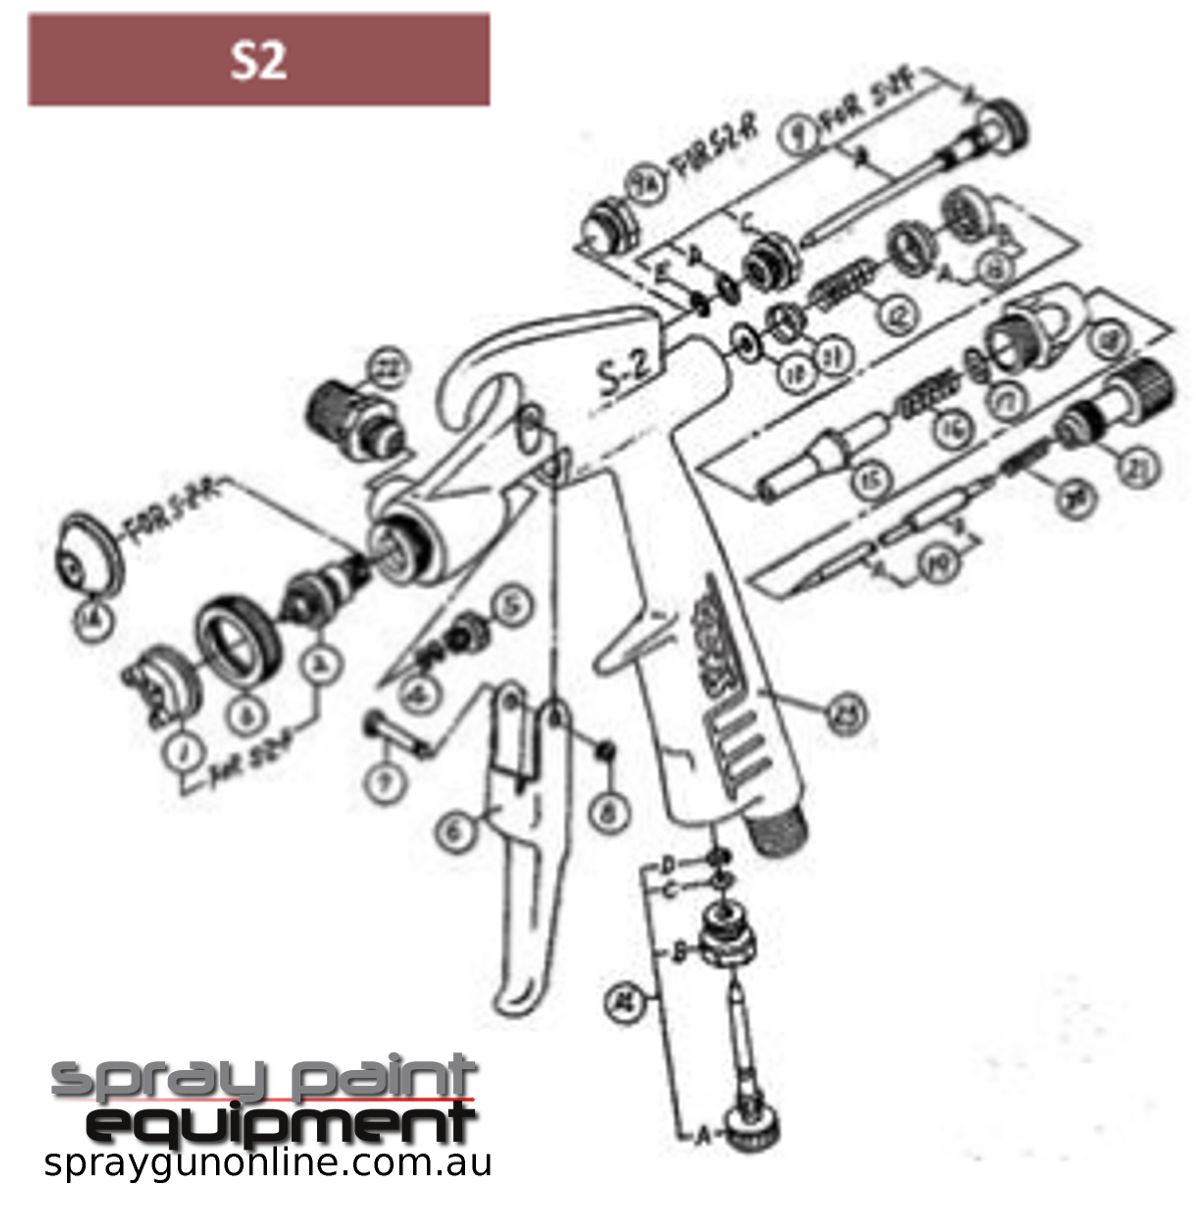 Spare parts schematic for Star S2 Mini gravity touch up spray guns